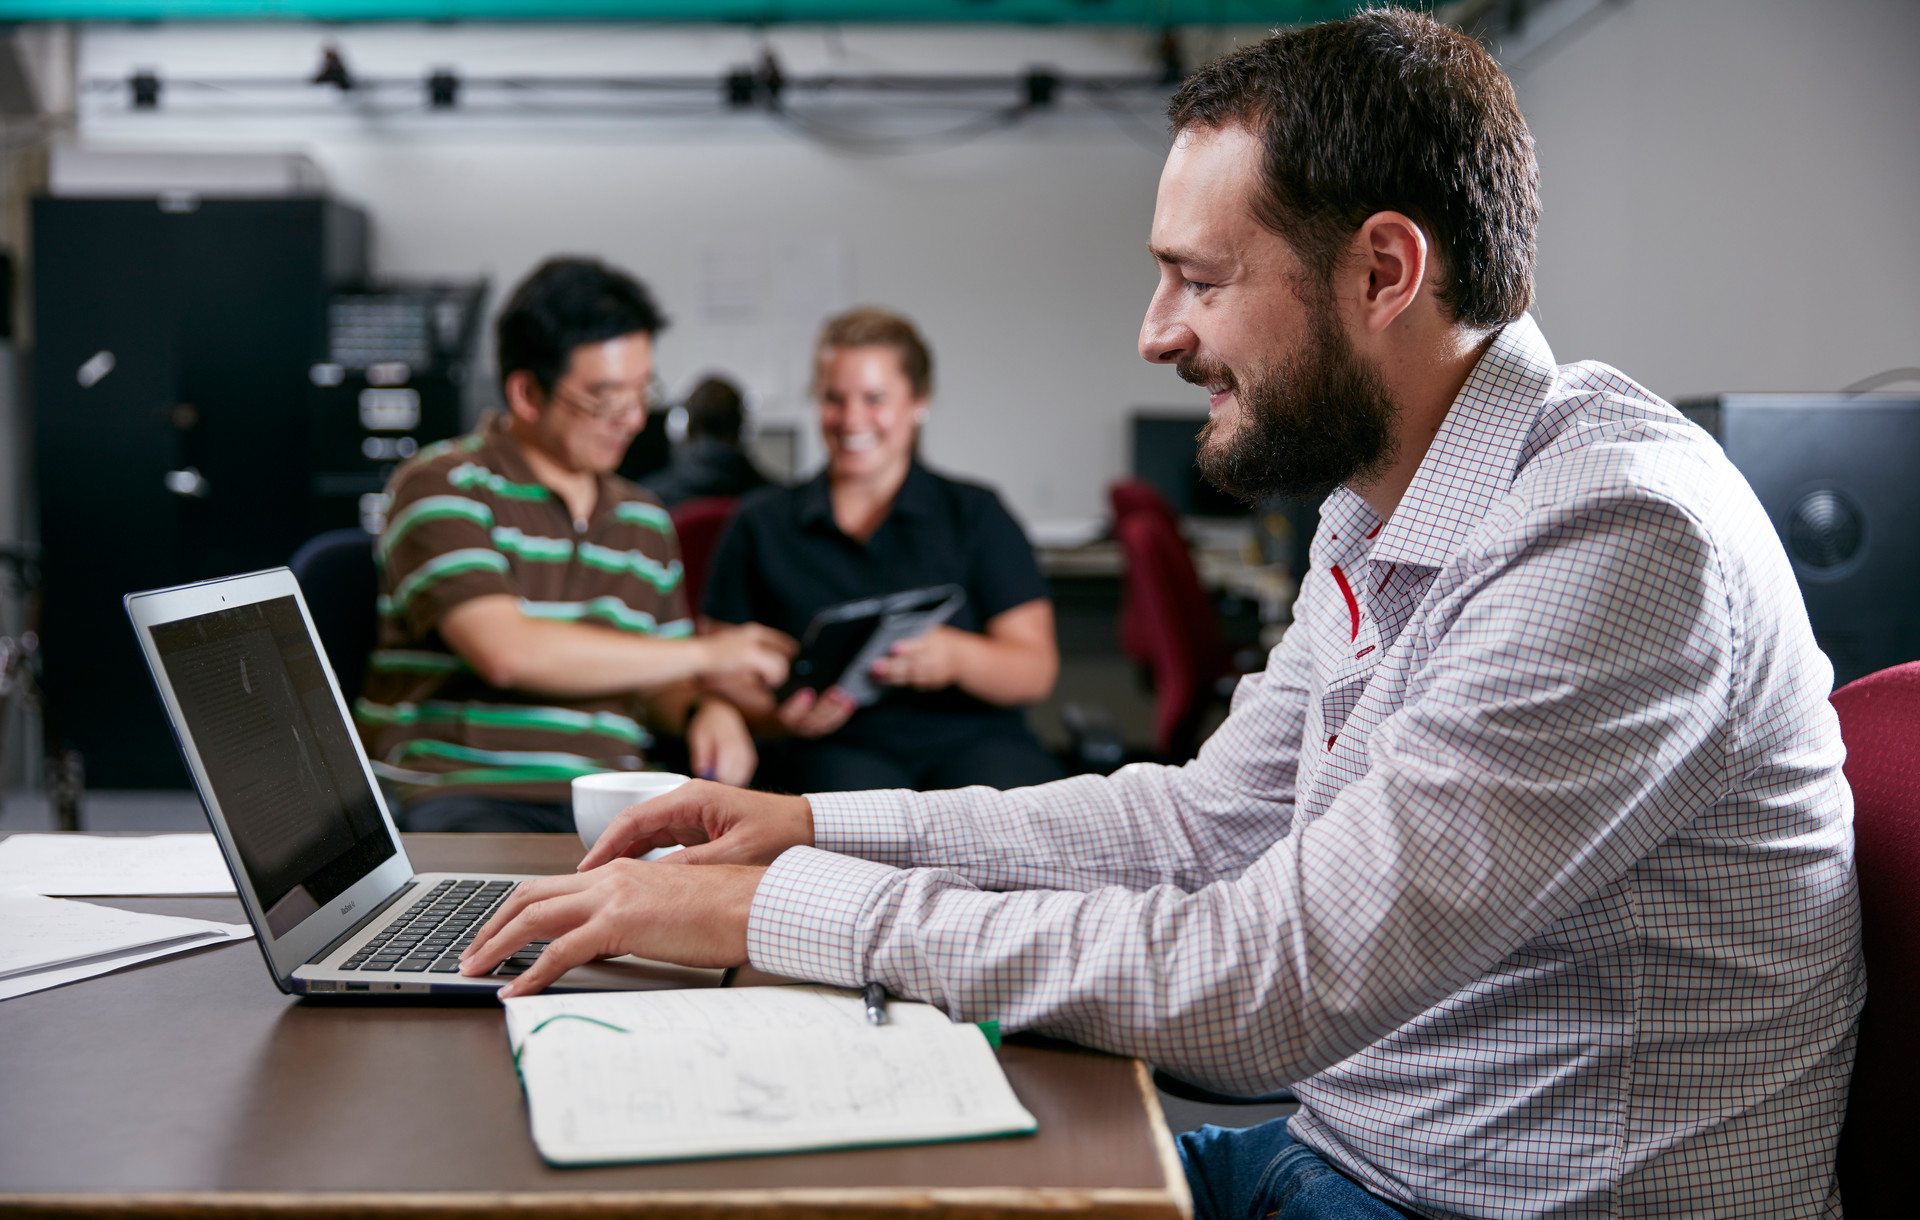 Male student working at desk on computer